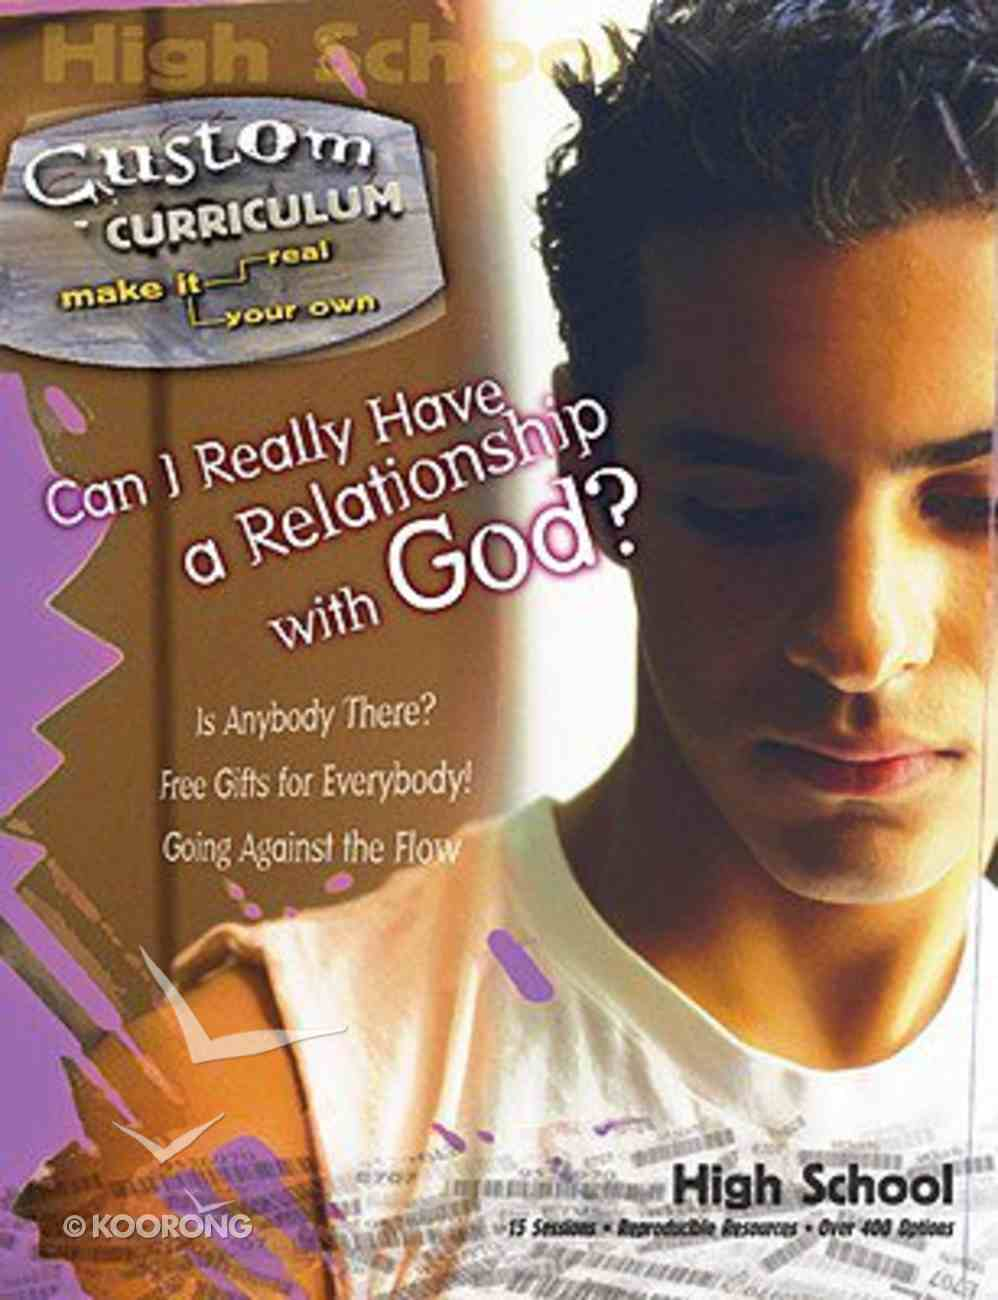 Reaching For a Relationship With God? (Custom Curriculum Series) Paperback